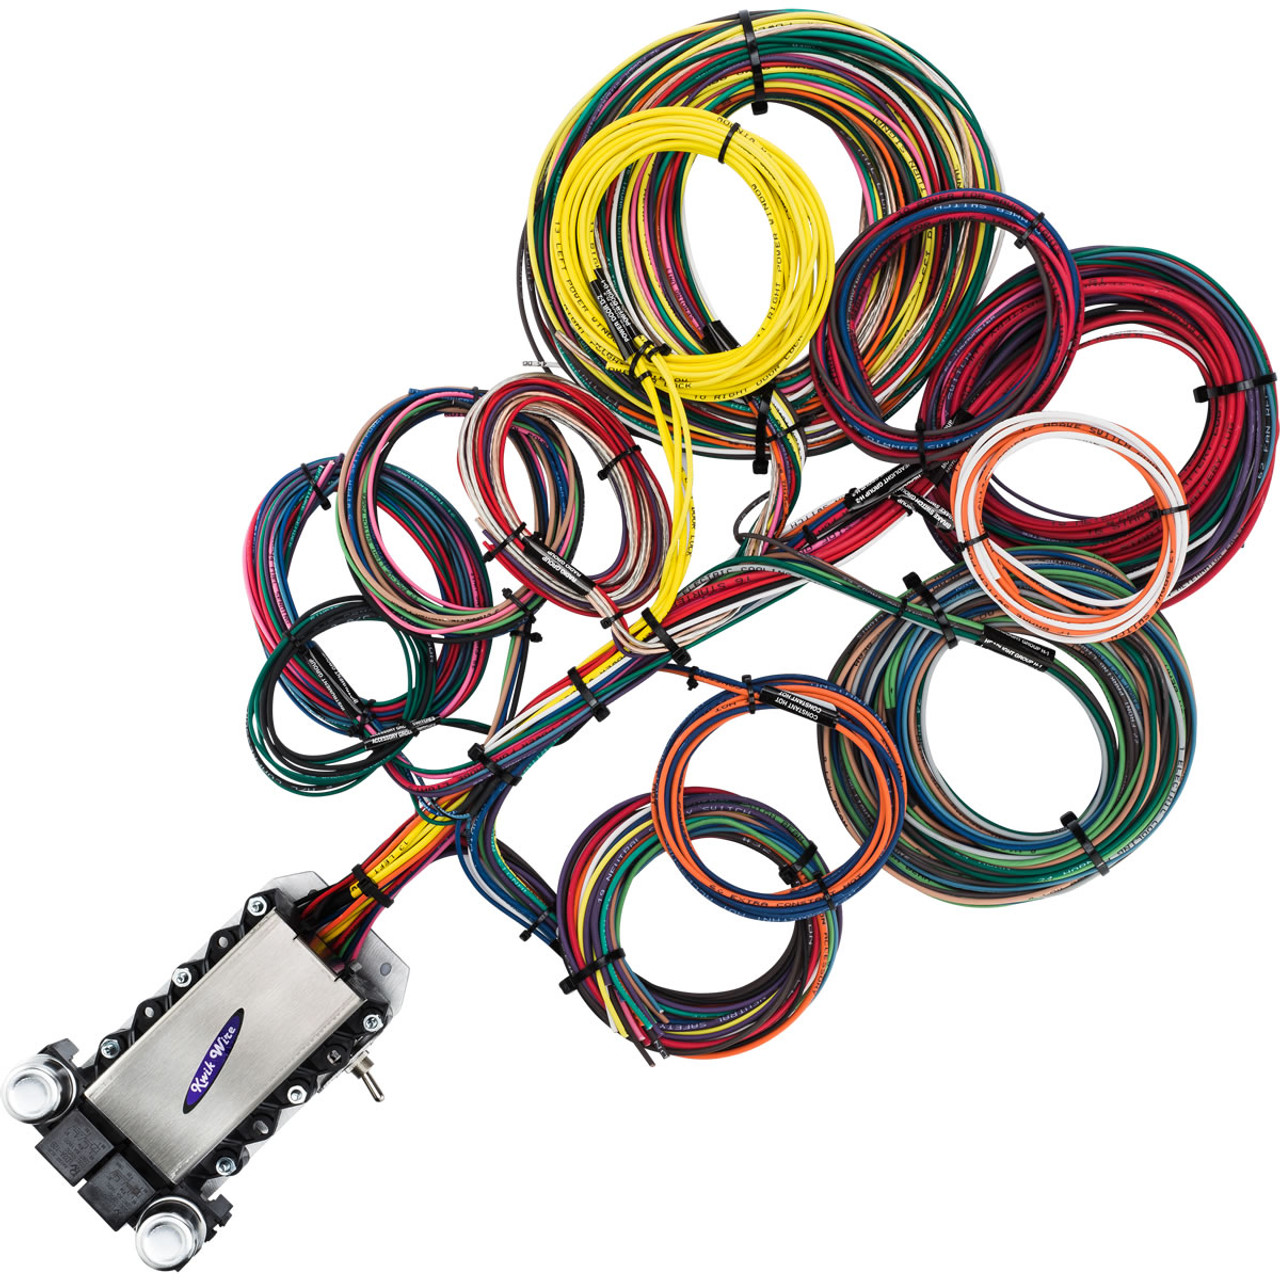 22 circuit wire harness kwikwire com electrify your ride amc wiring harness straps [ 1200 x 1200 Pixel ]